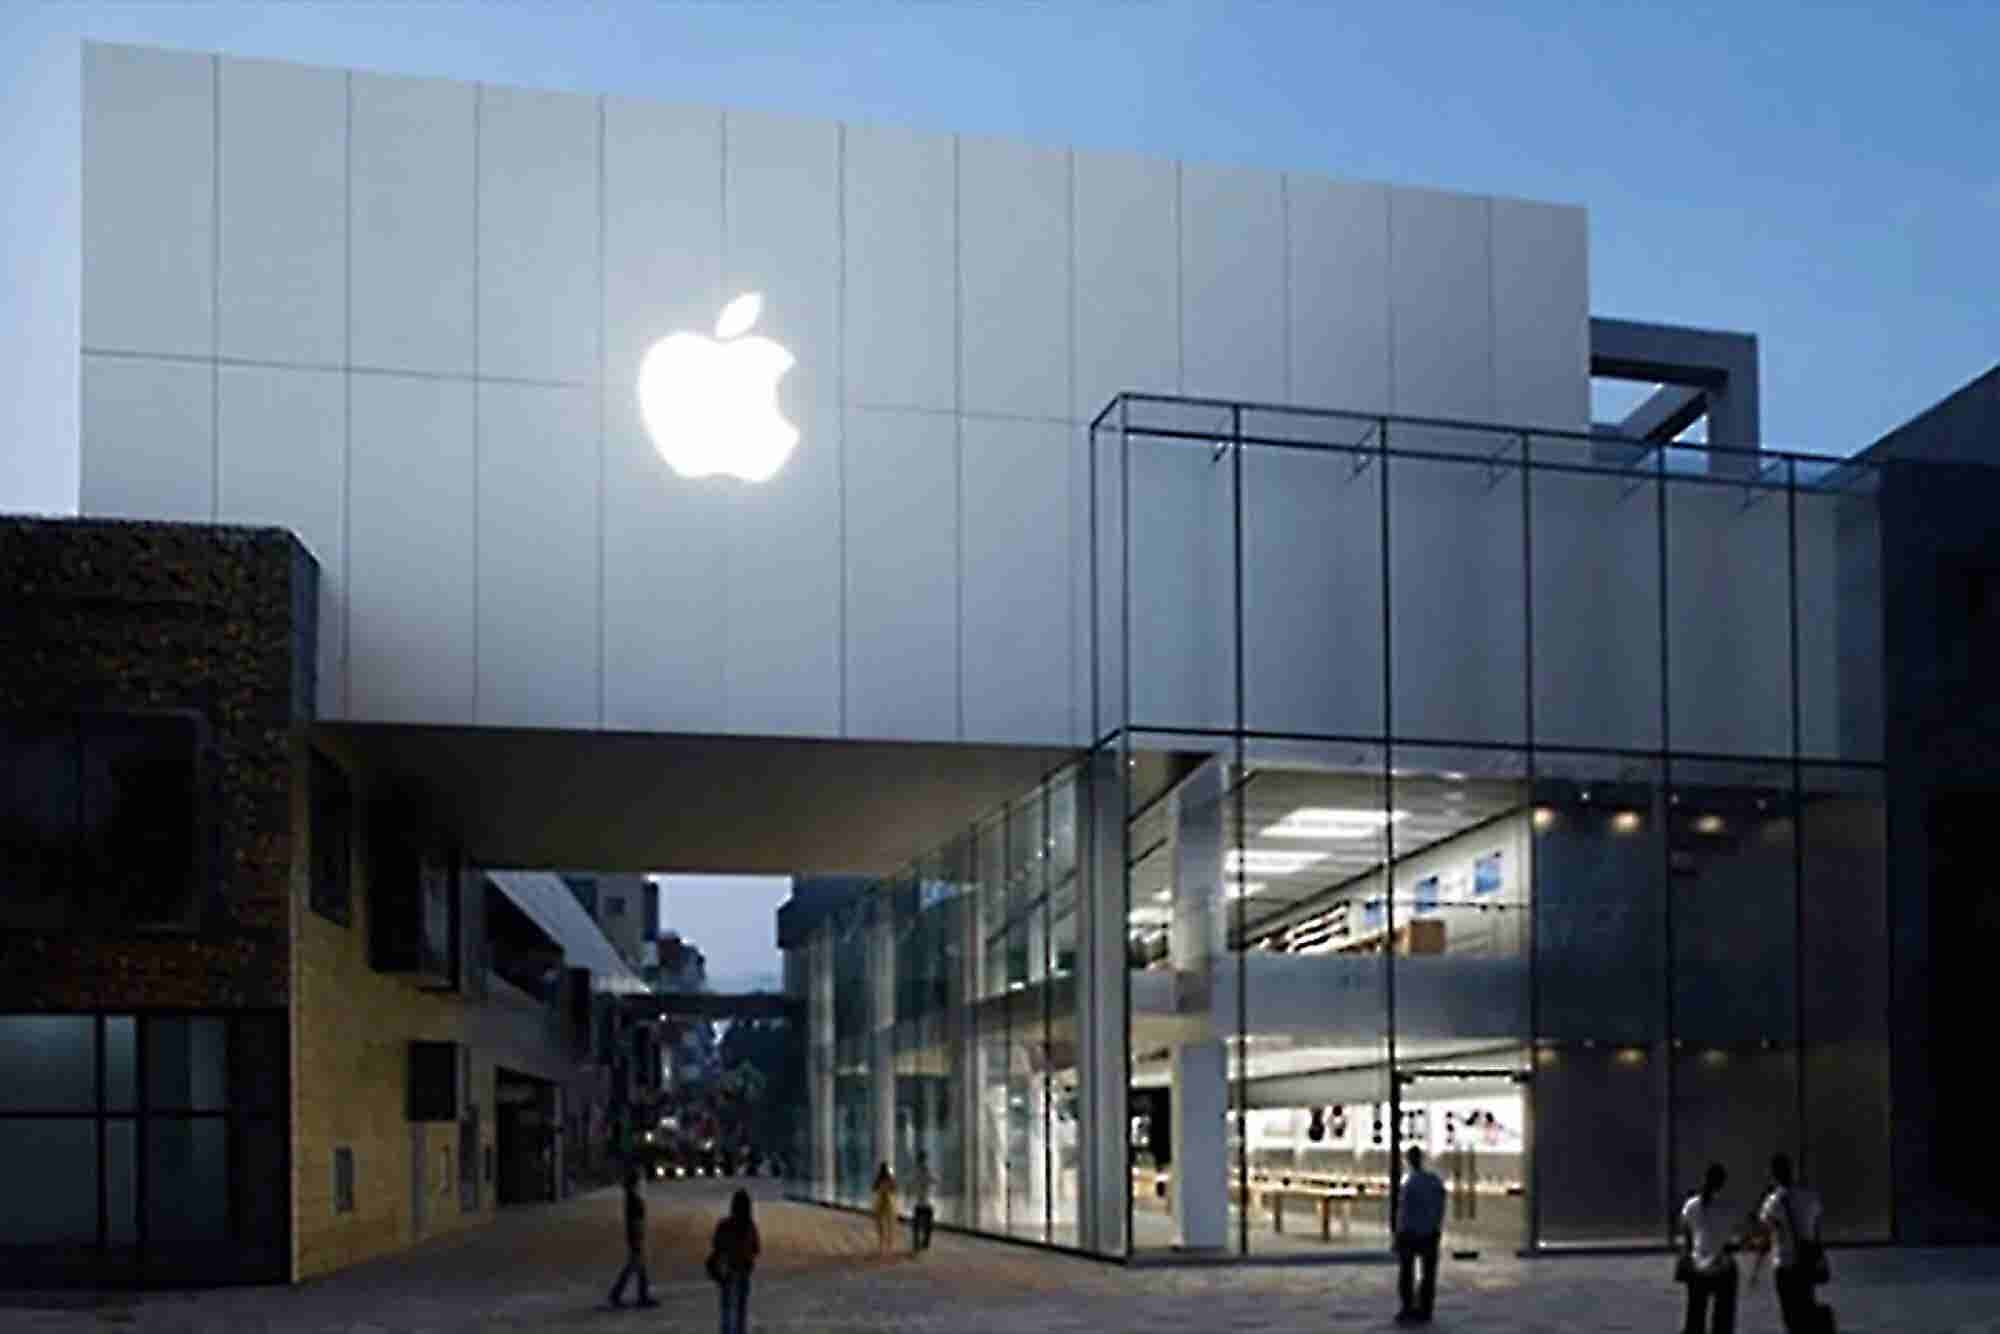 Apple Becomes China's Third Highest Smartphone Distributor